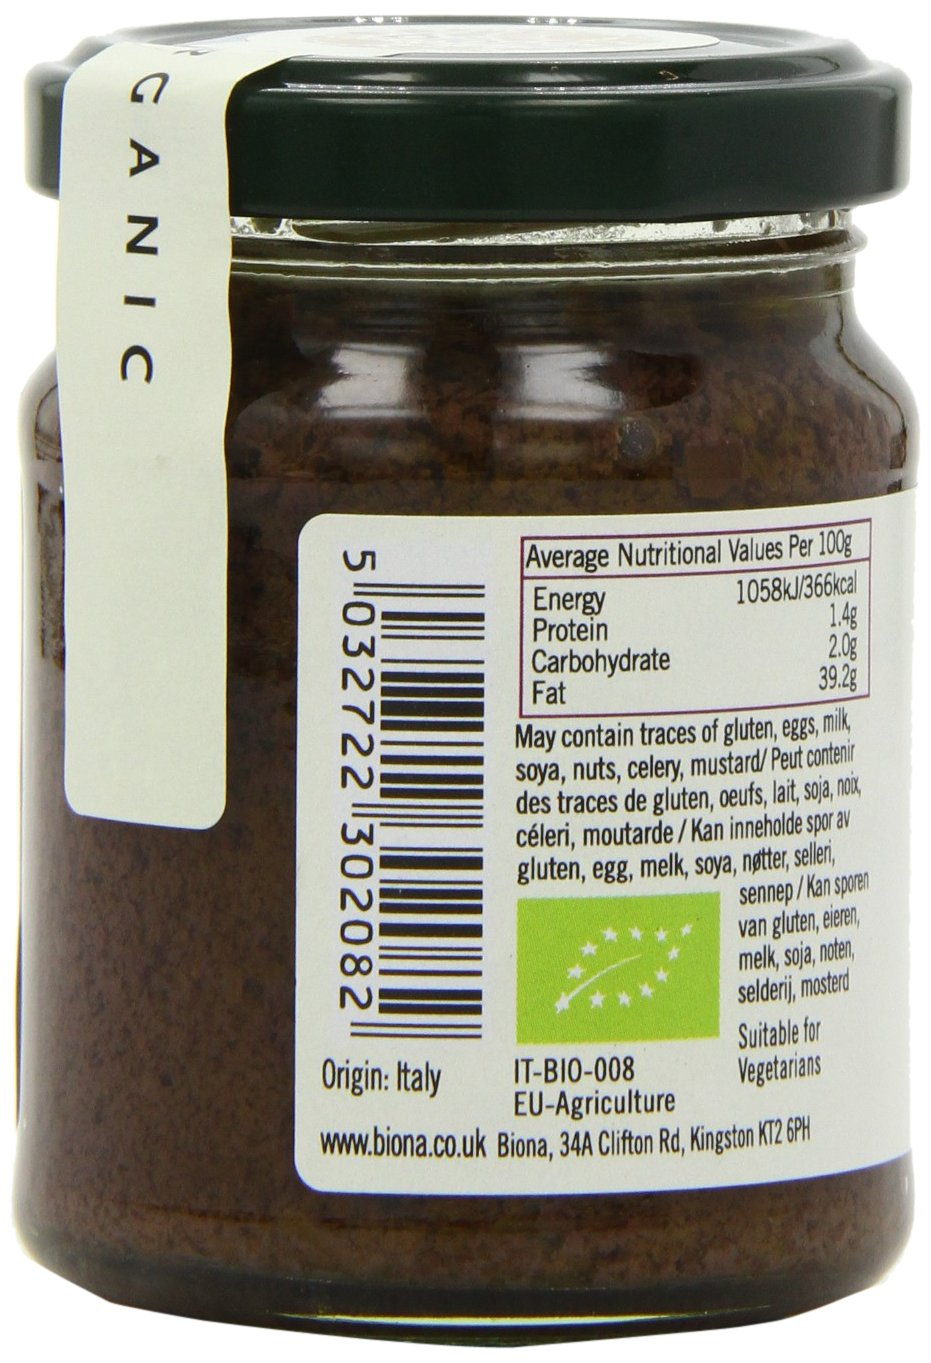 Amazon.com : Biona Organic Black Olive Pate 120g - Pack of 6 : Grocery & Gourmet Food